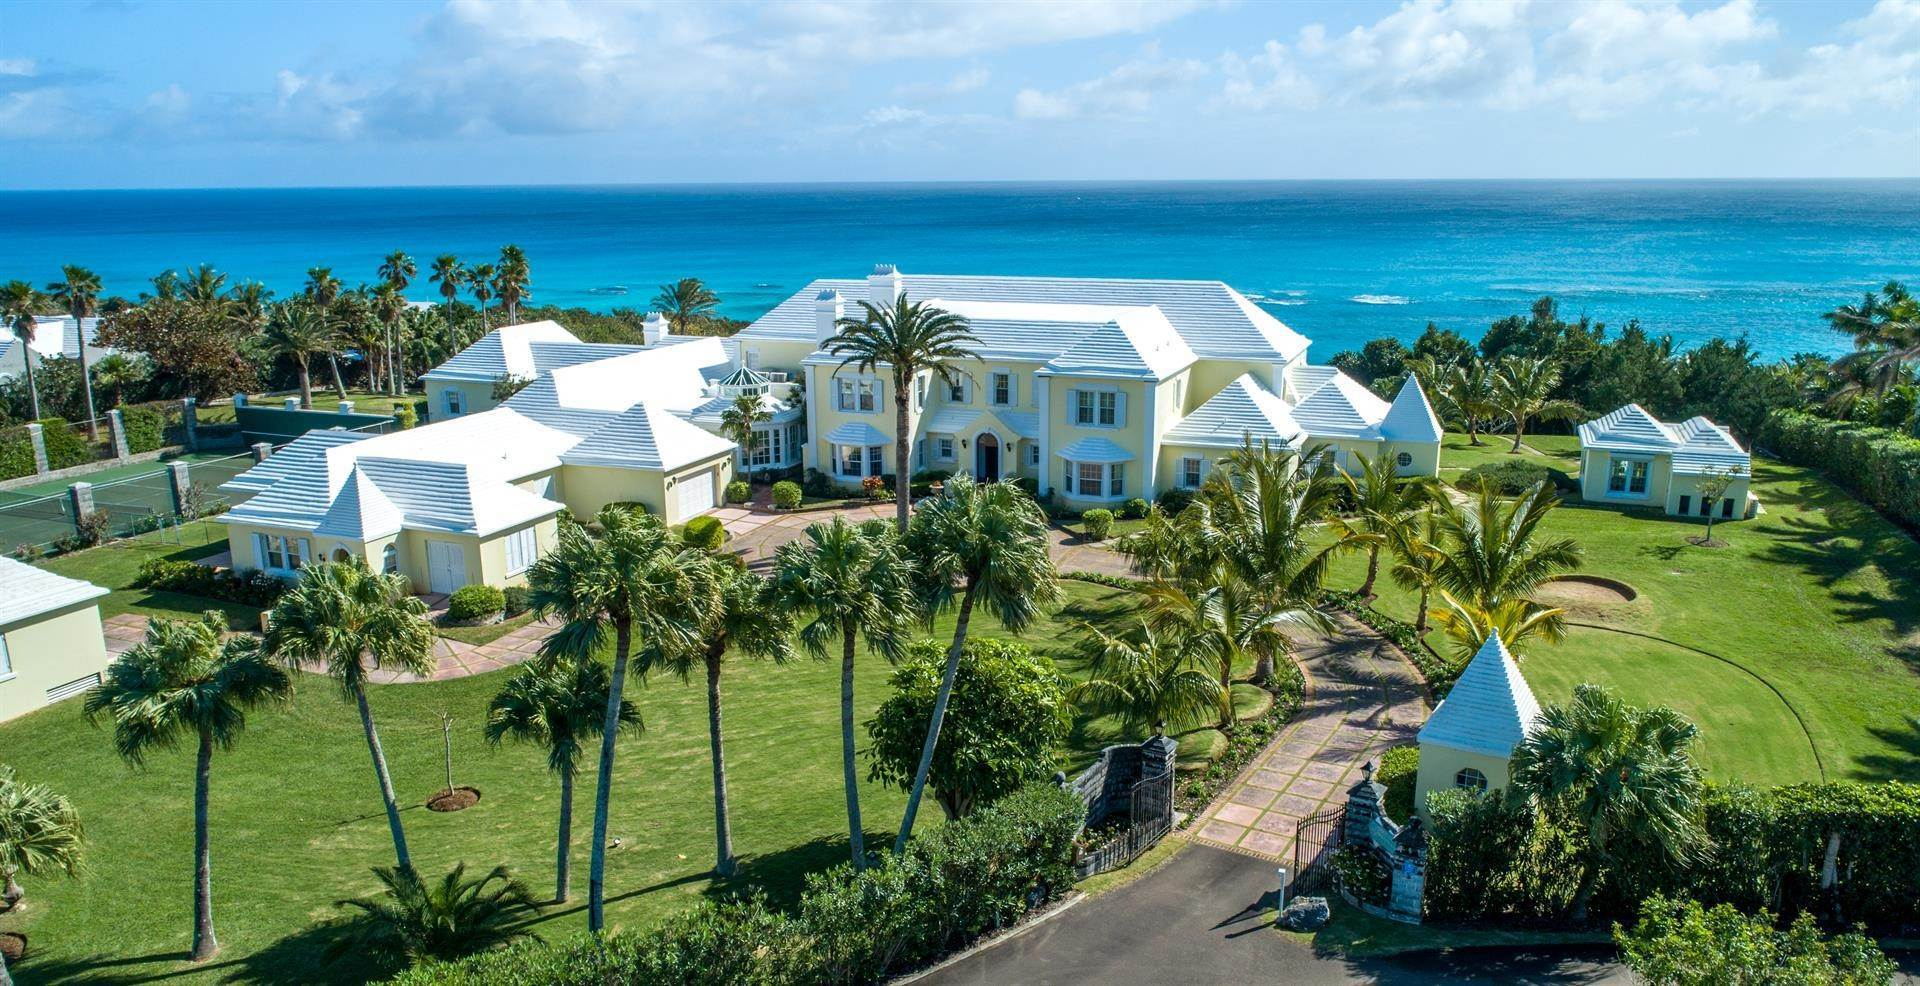 5. Waterfront Property for Sale at Agapanthus On Grape Bay Agapanthus On Grape Bay, 11 Inglewood Lane,Bermuda – Sinclair Realty